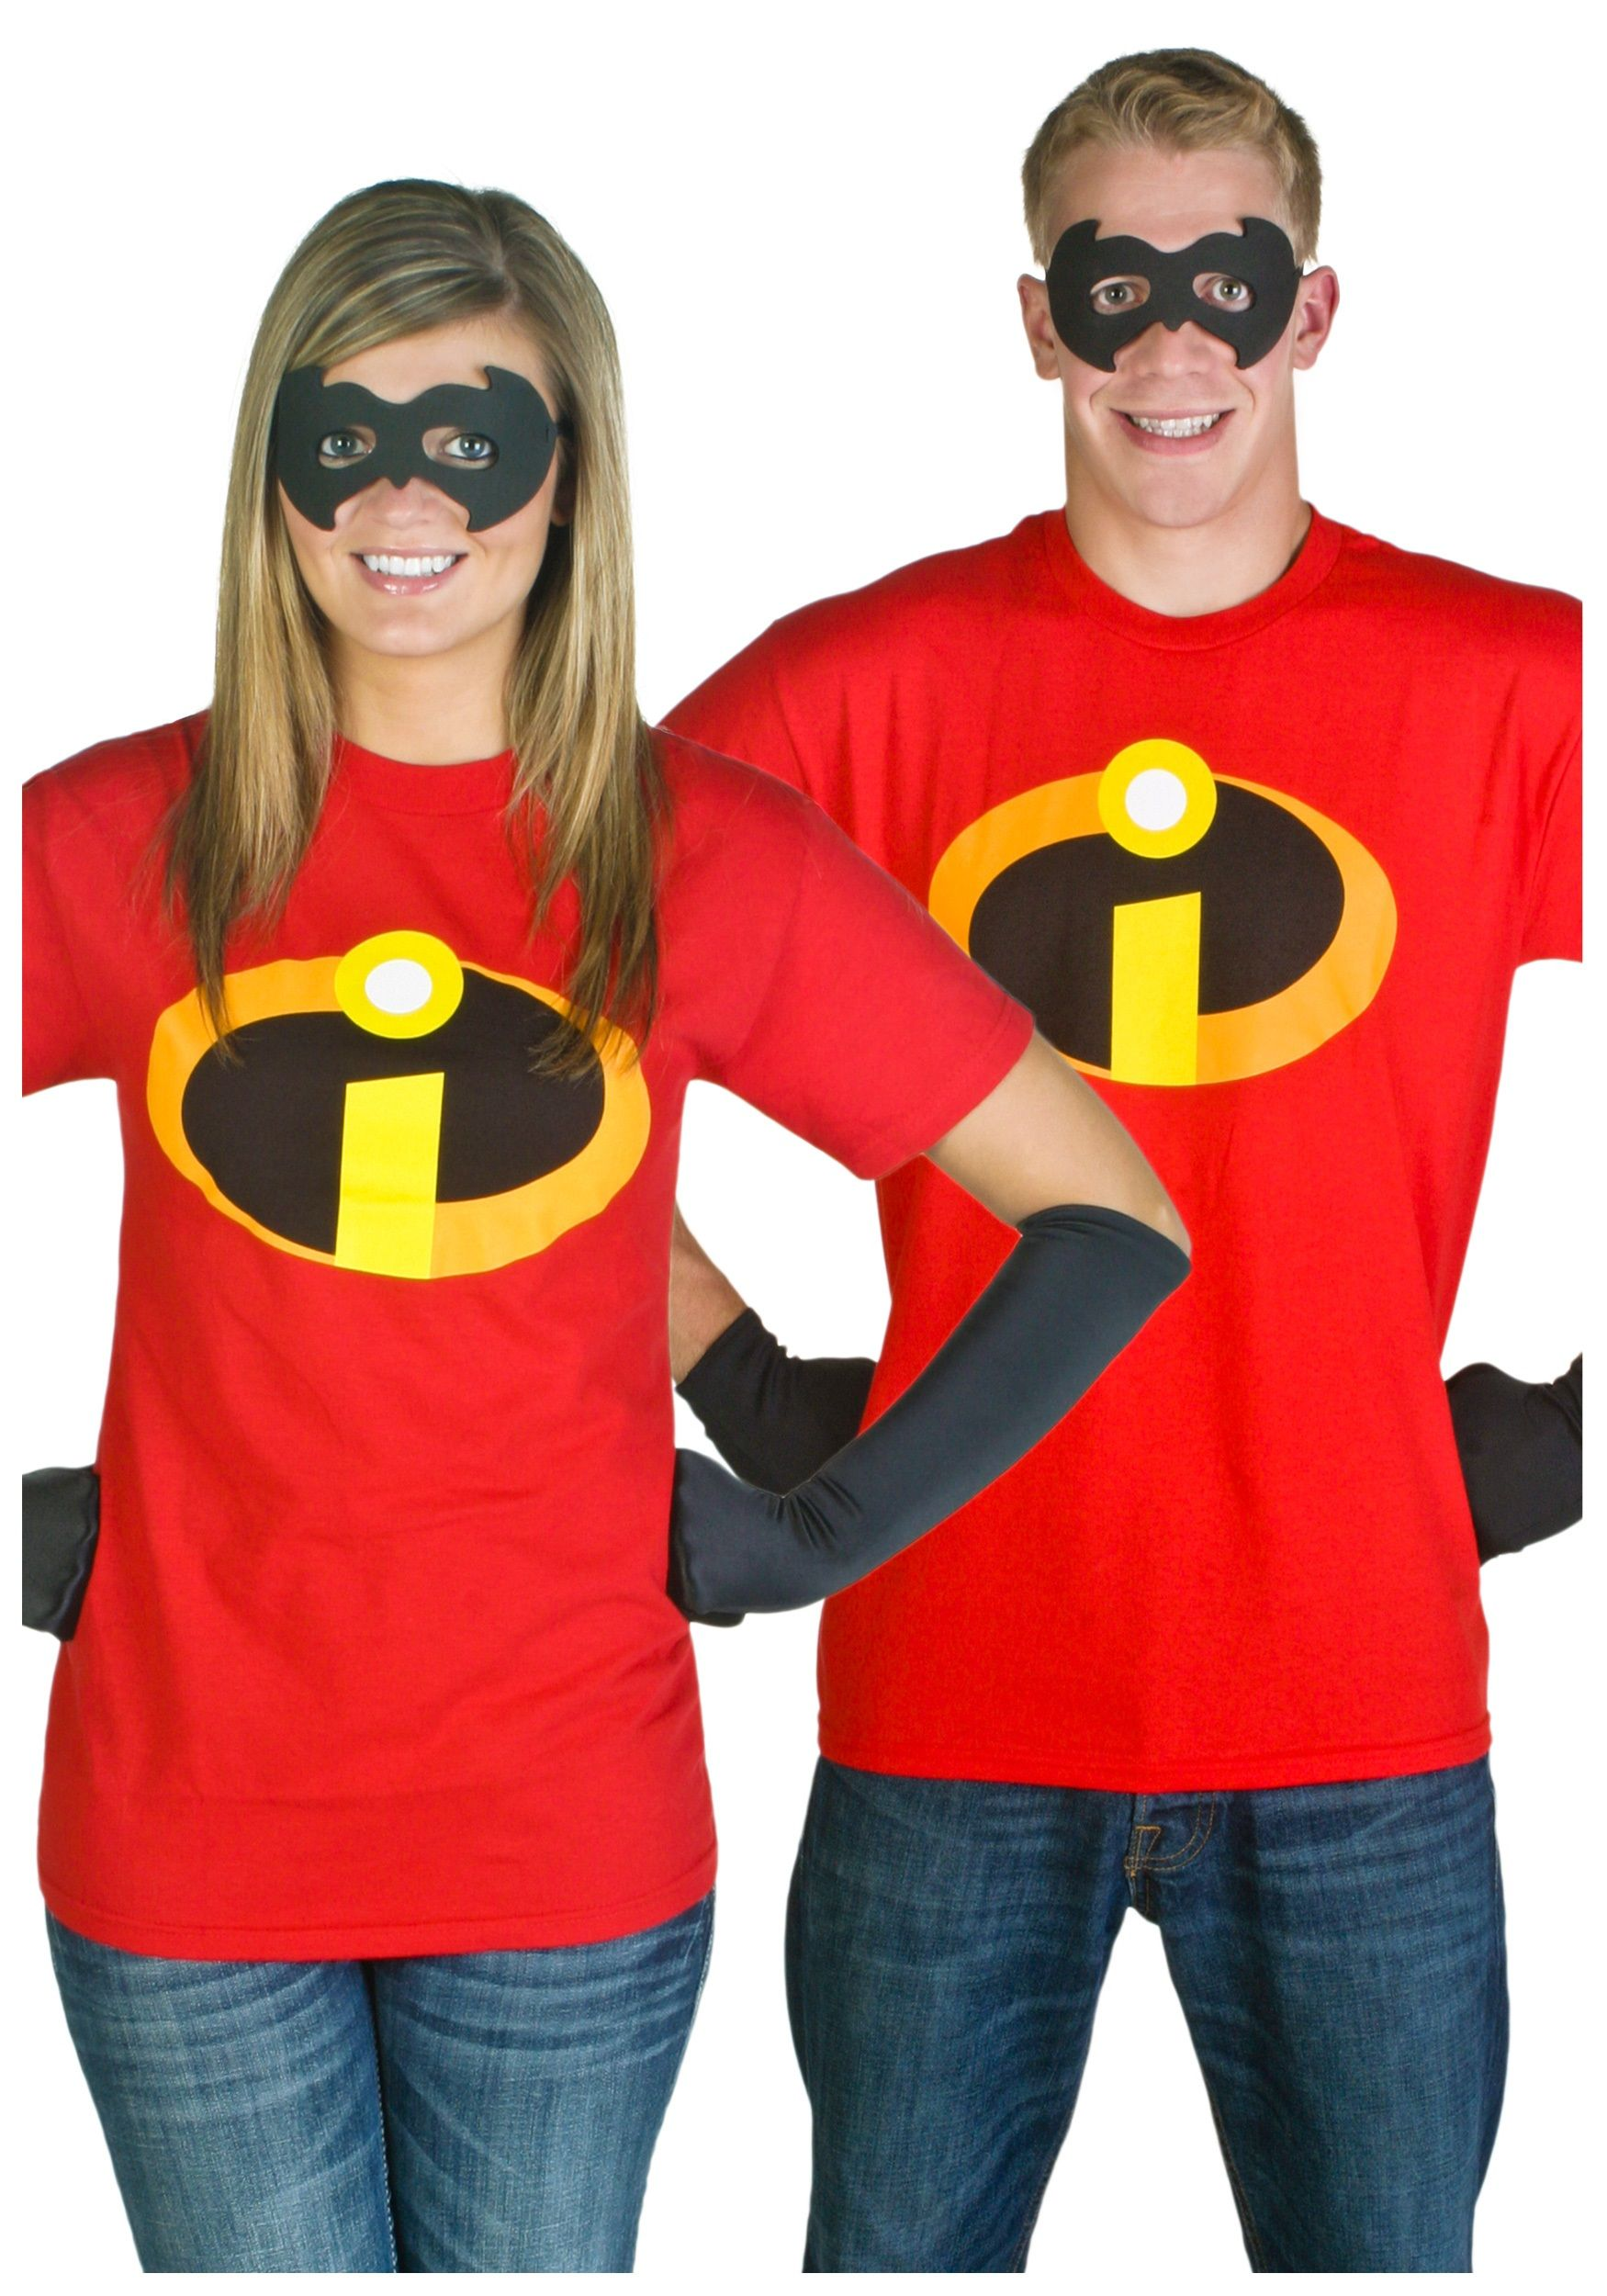 Costumes for women tshirtincredables home adult costume ideas costumes for women tshirtincredables home adult costume ideas superhero costumes mens superhero costumes solutioingenieria Choice Image